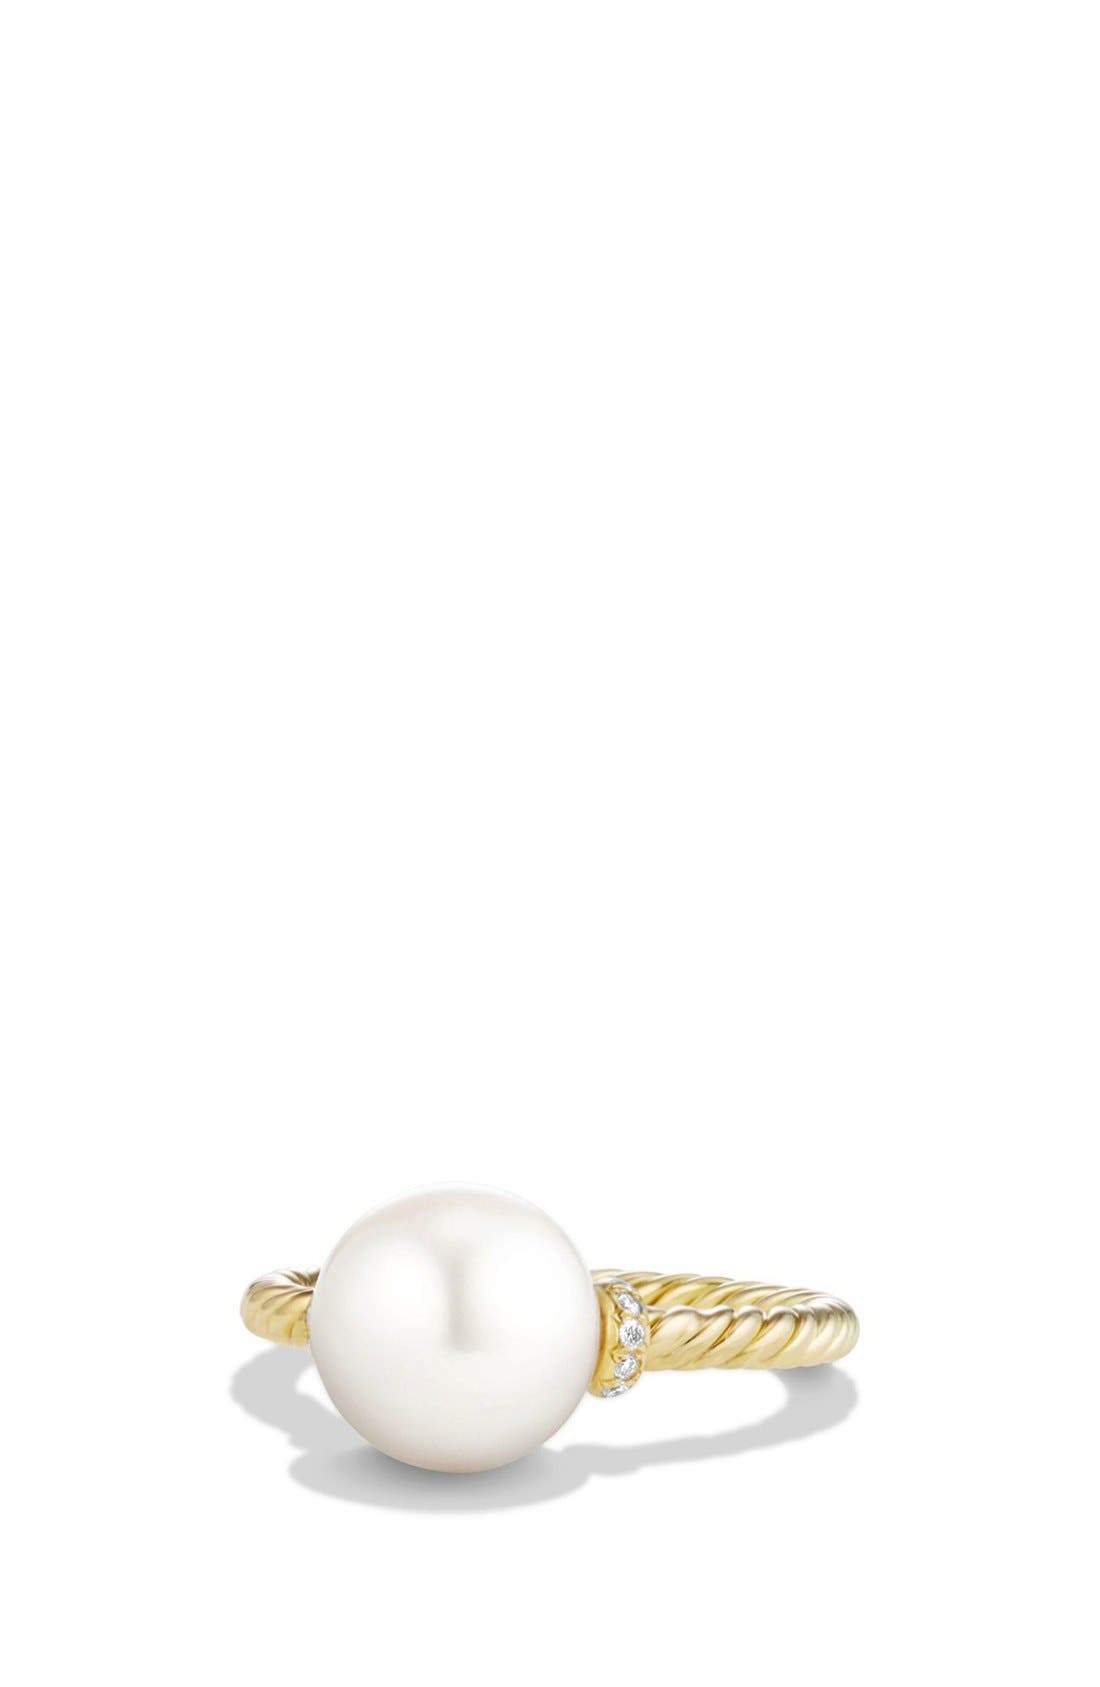 'Solari' Station Ring with Diamonds and Pearls,                             Main thumbnail 1, color,                             Pearl